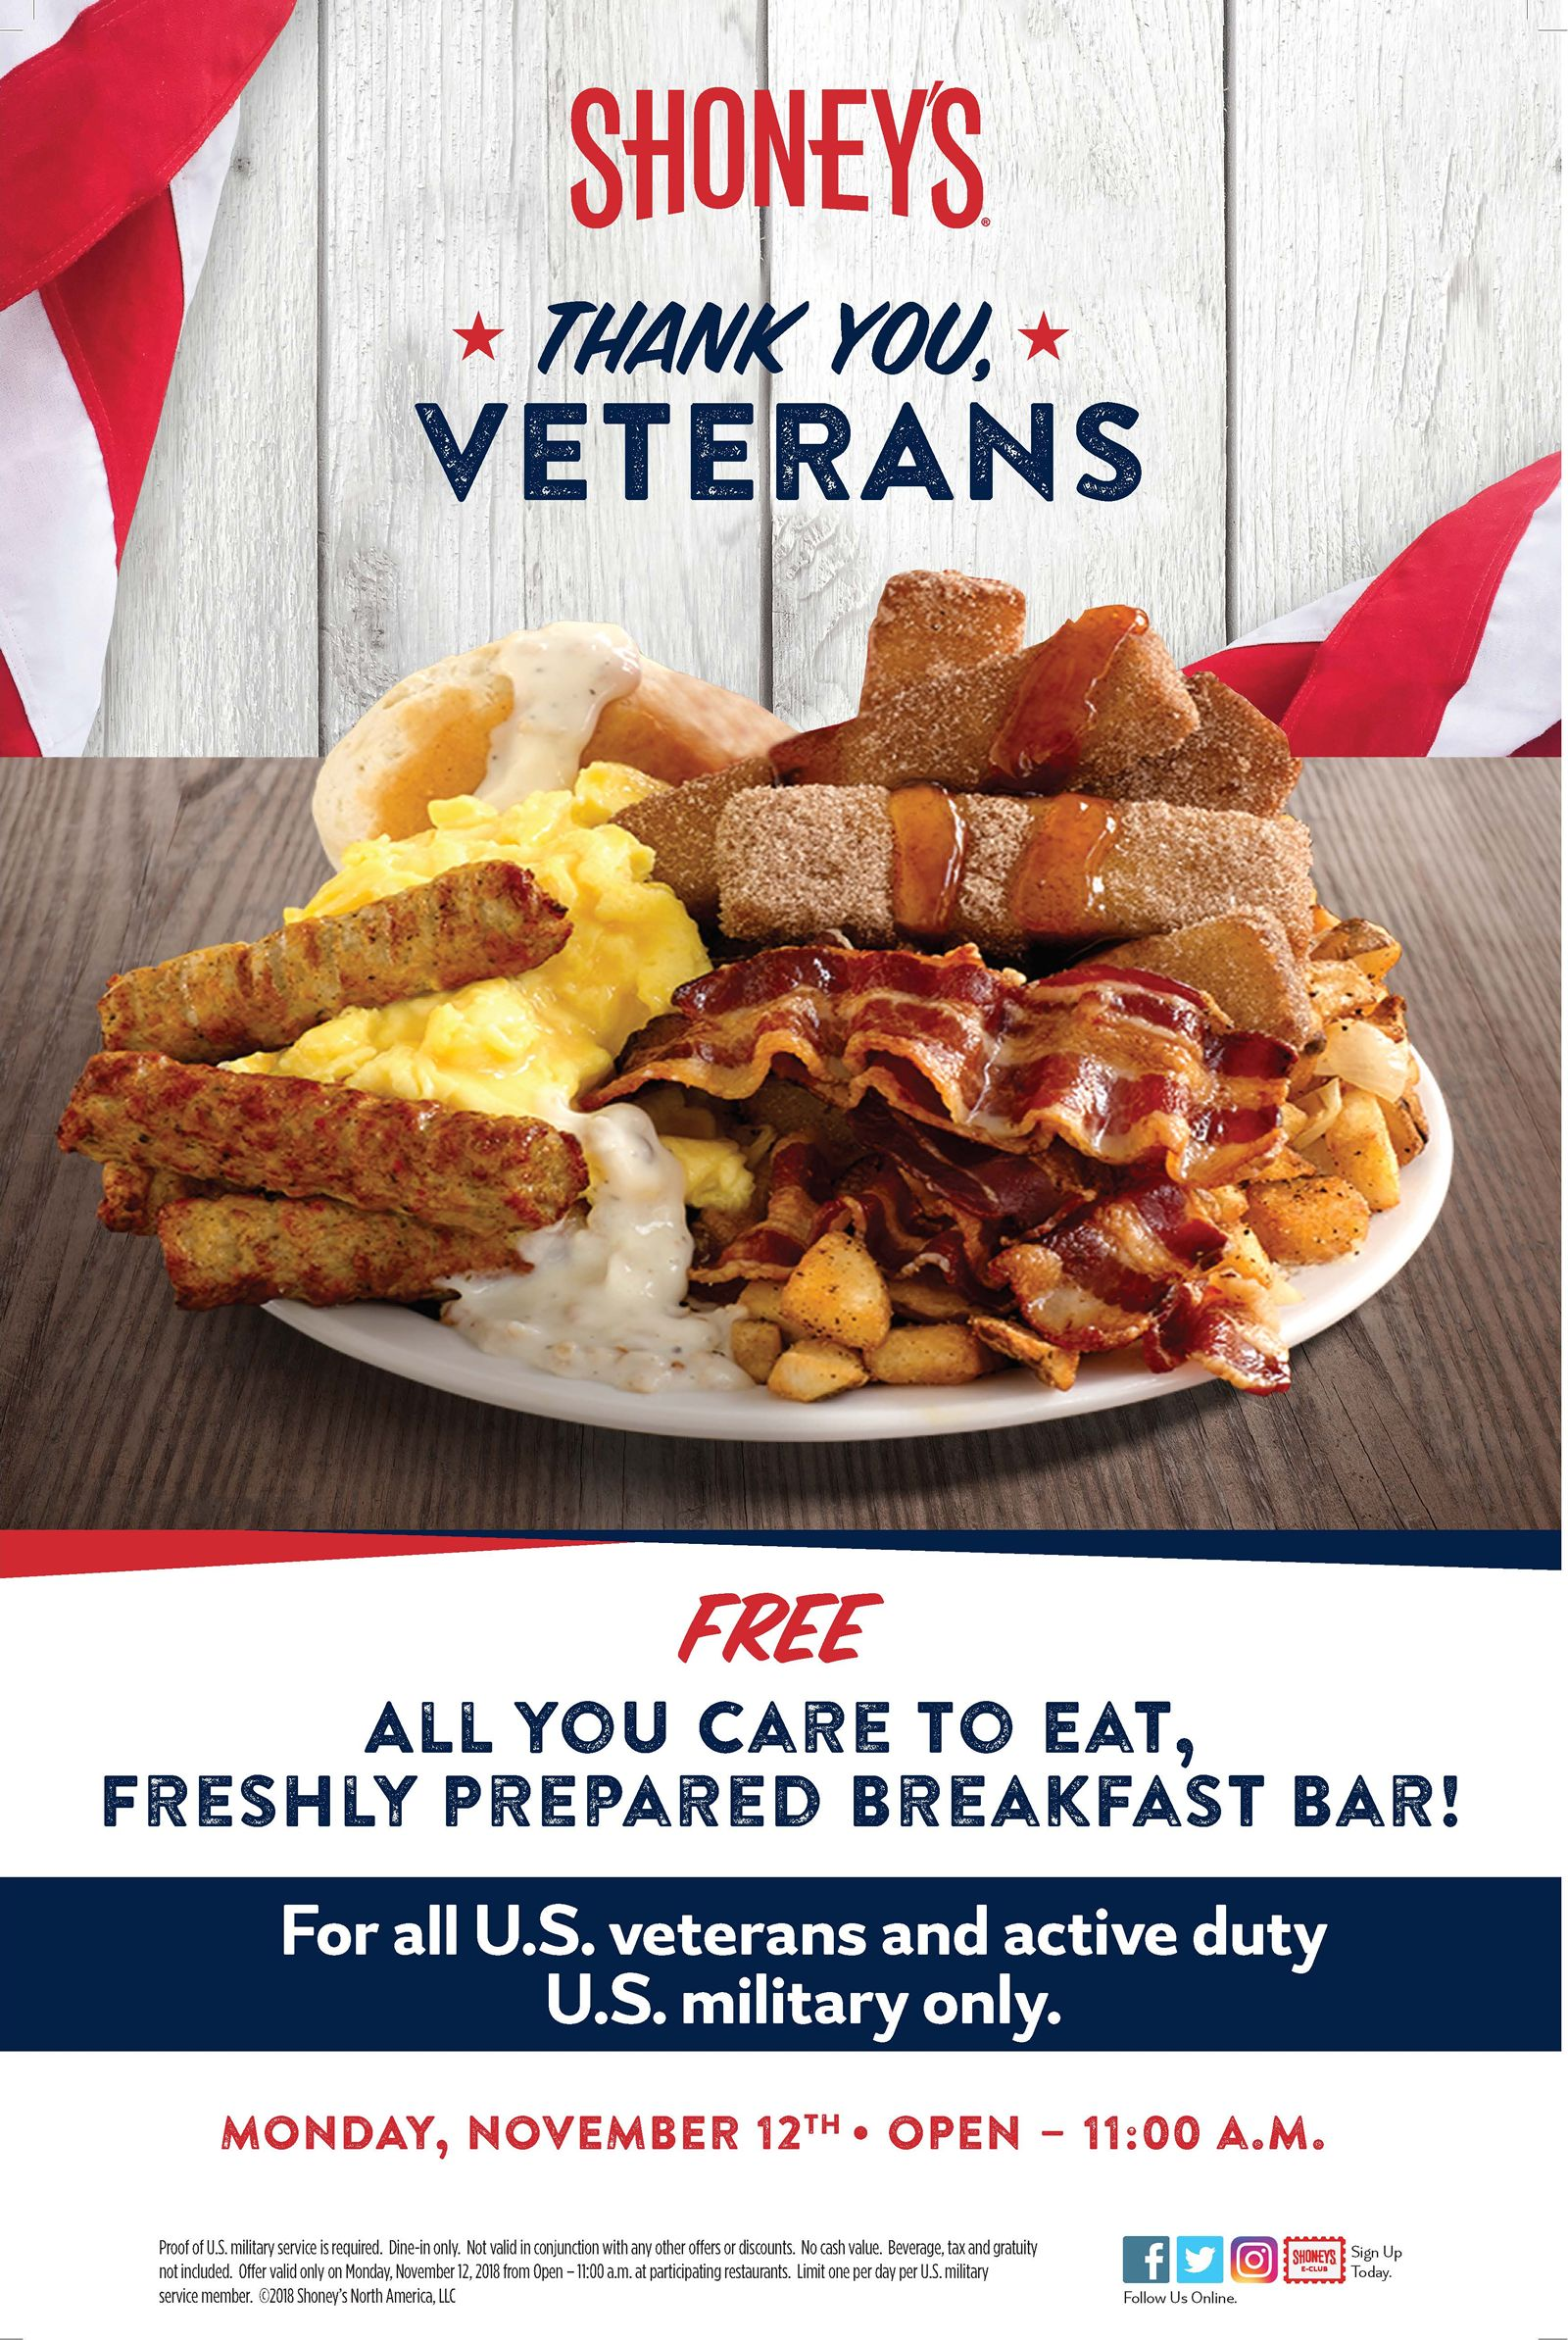 Shoney's Offers FREE All You Care To Eat, Freshly Prepared Breakfast Bar for Veterans and Active Duty Military When the Heroes' Holiday is Being Observed - Monday, November 12